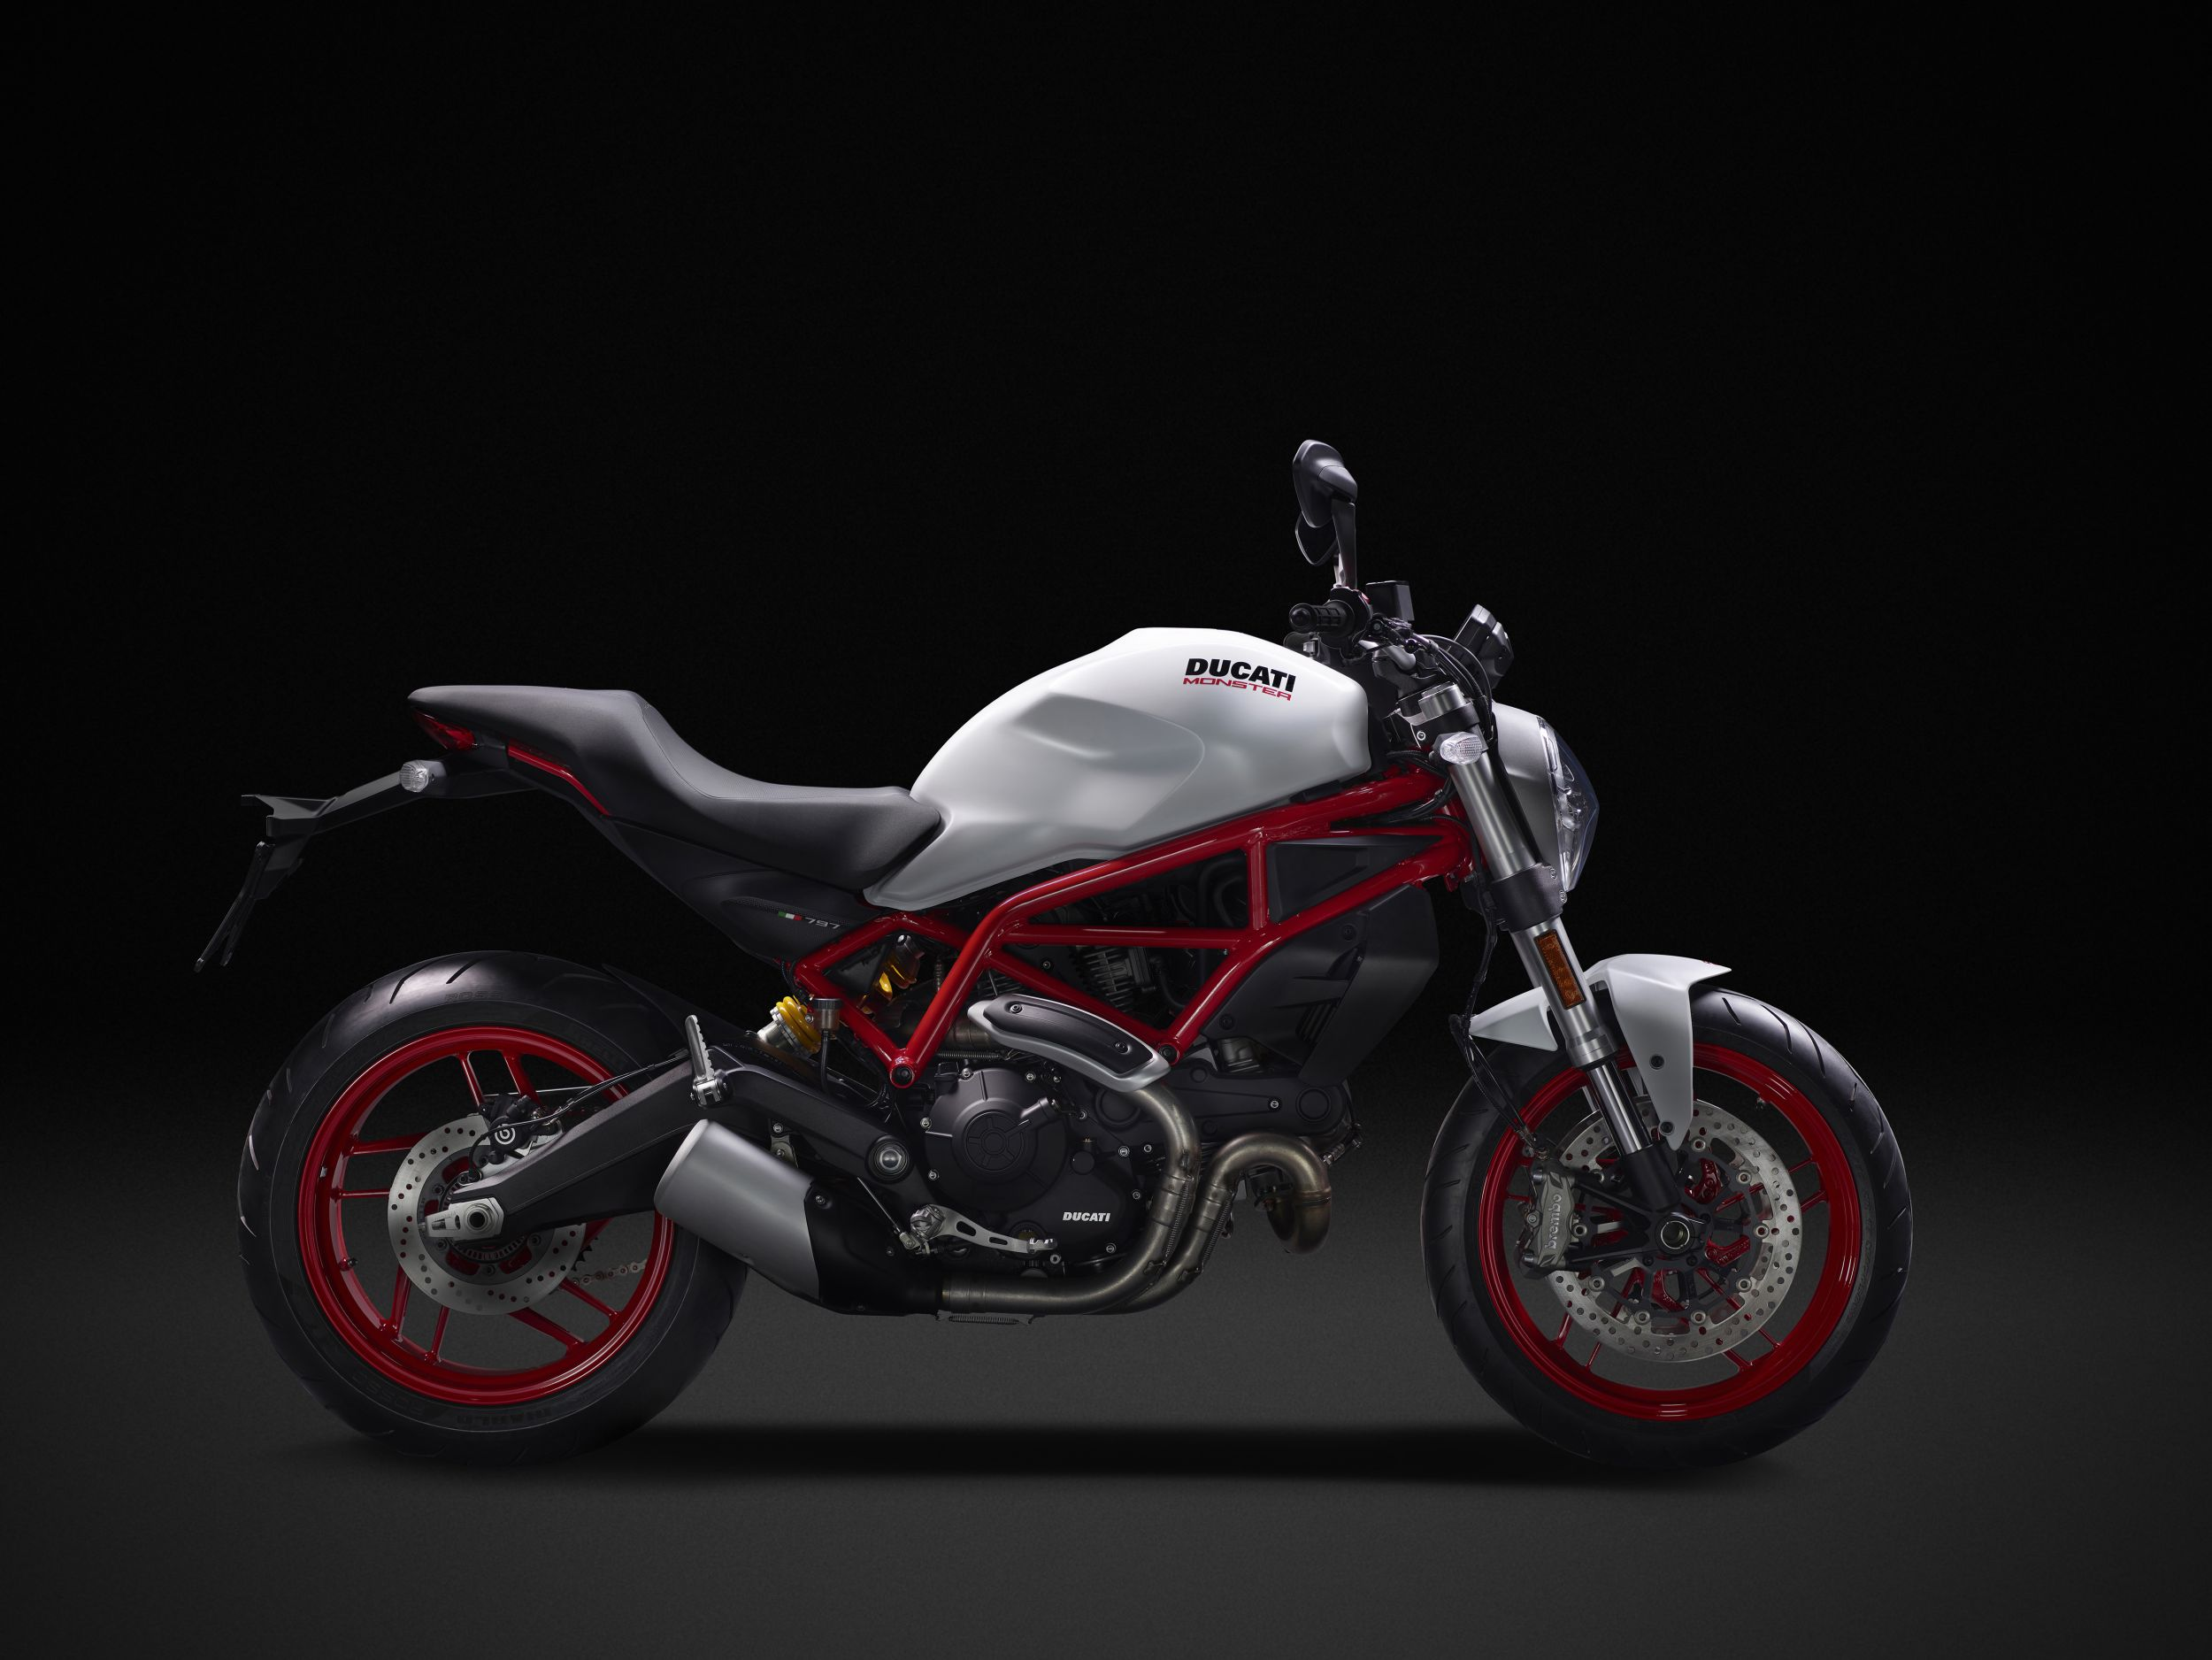 gebrauchte ducati monster 797 motorr der kaufen. Black Bedroom Furniture Sets. Home Design Ideas